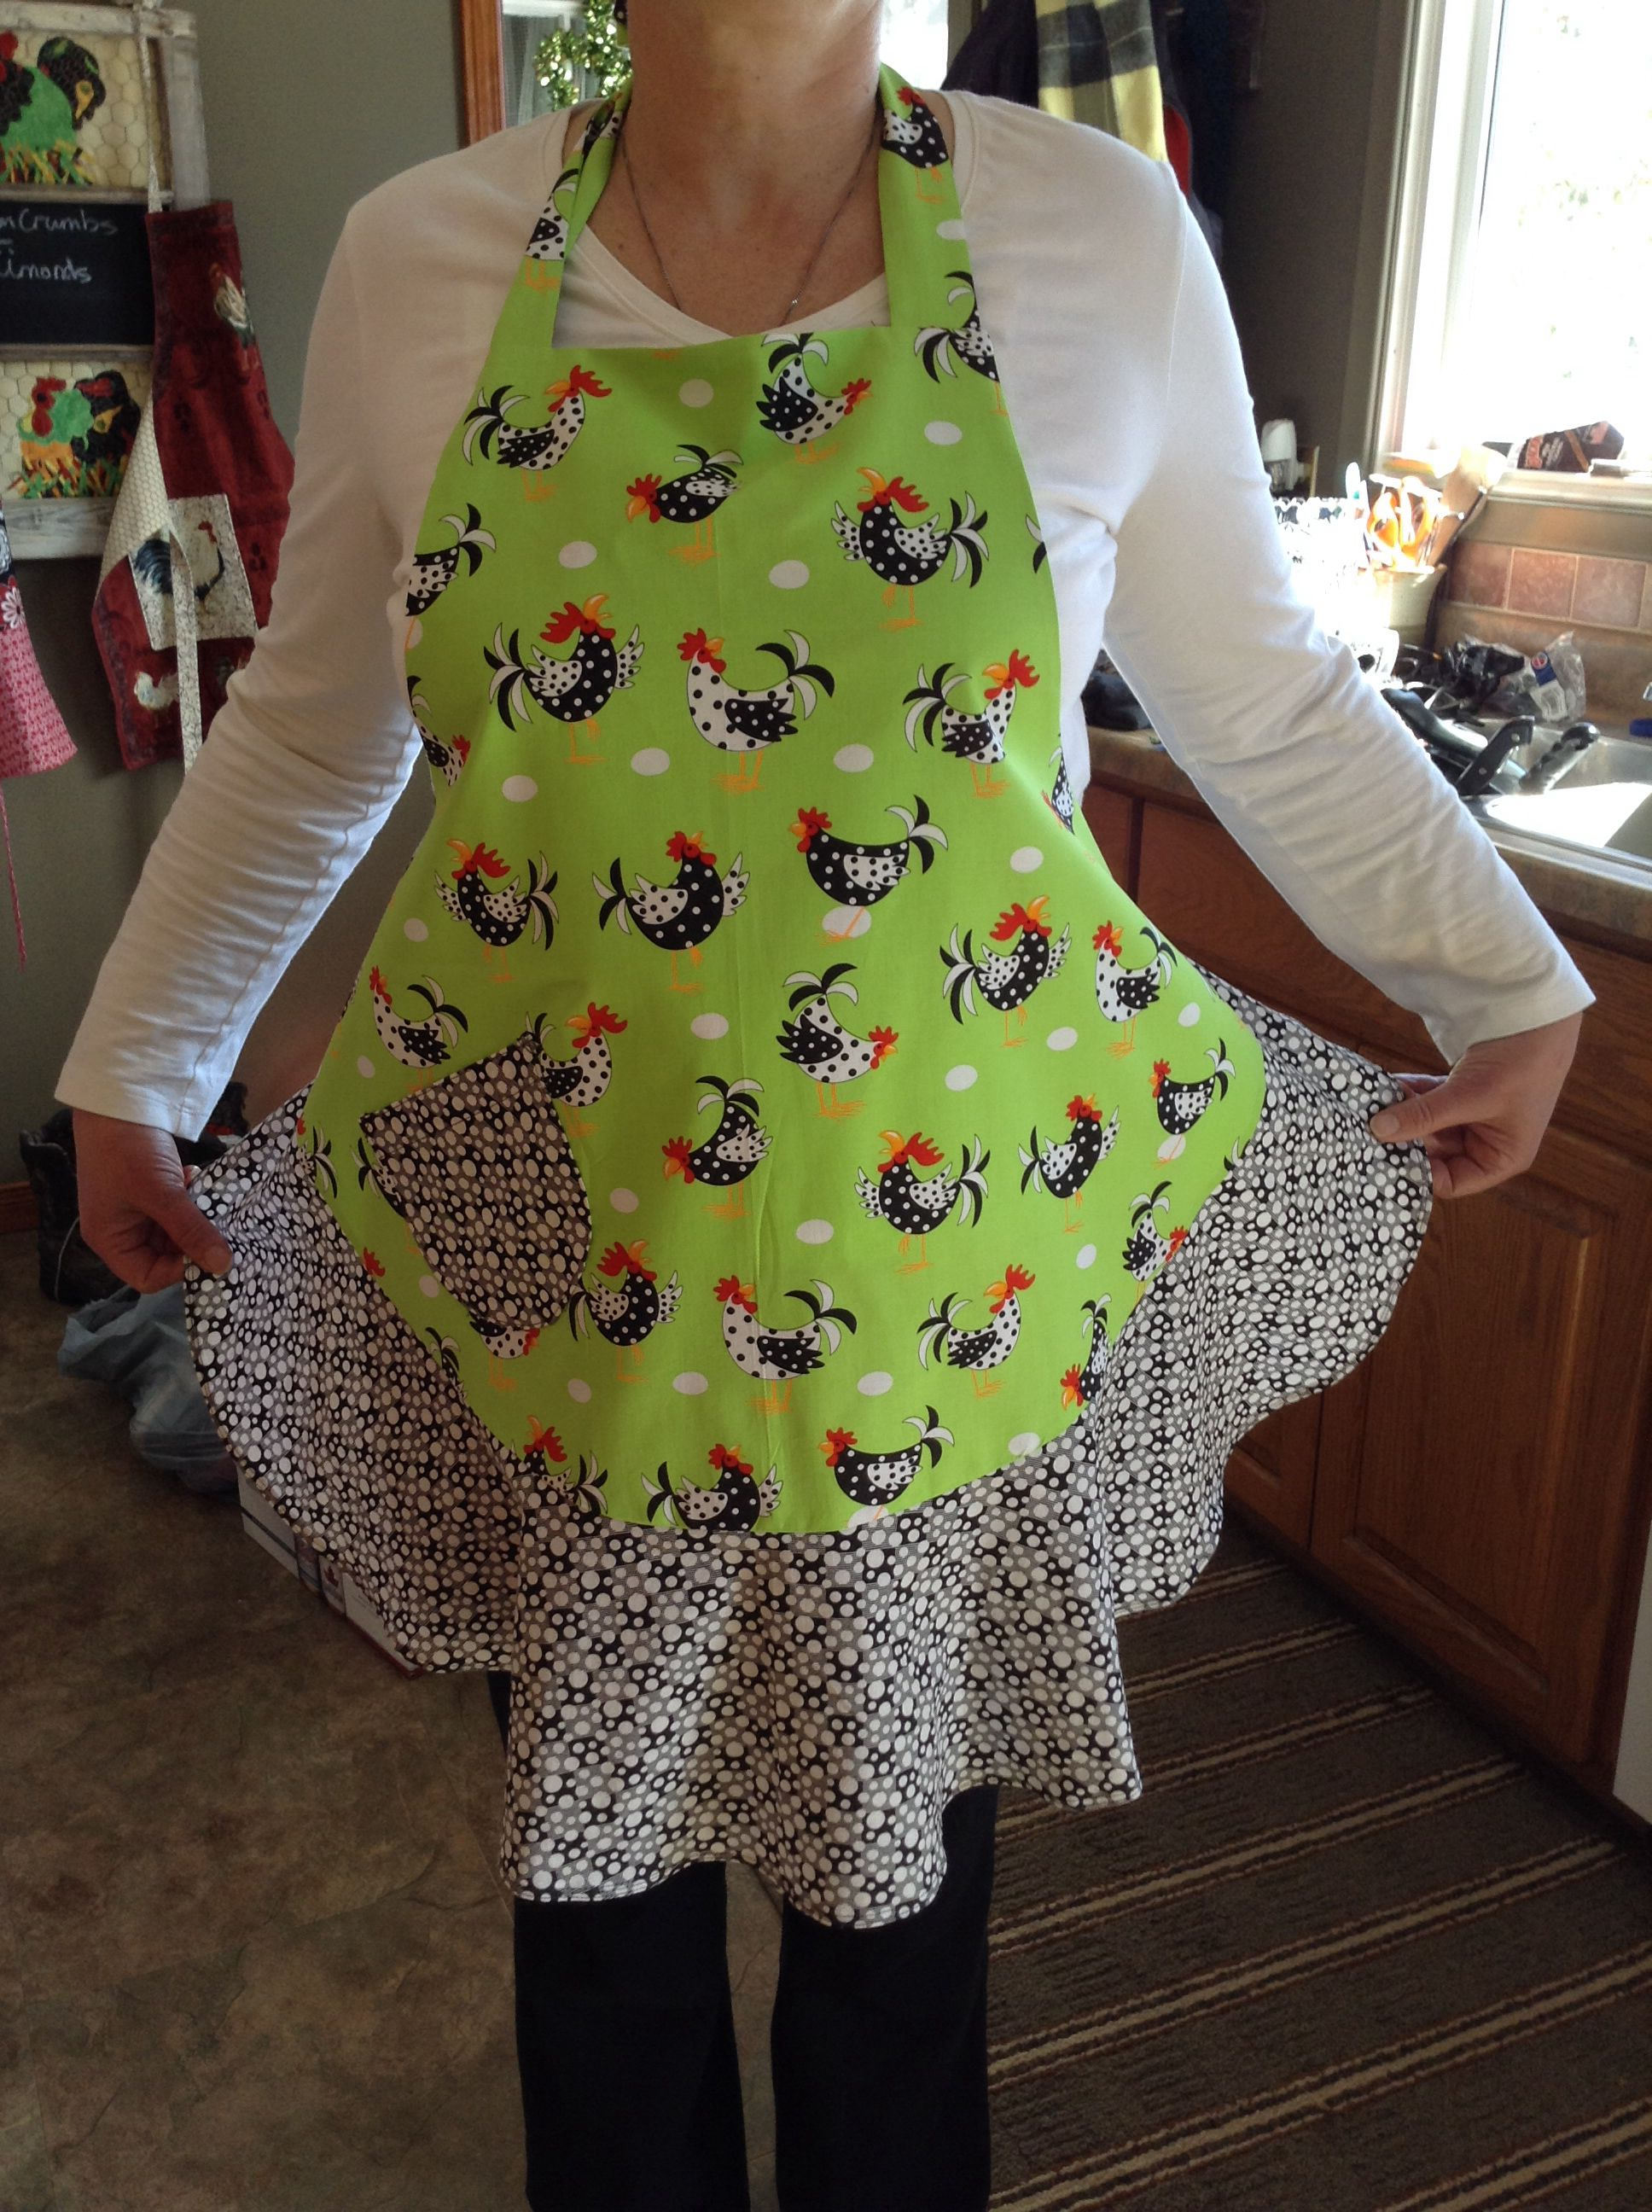 I made this apron from a KWIK sew pattern for a shower gift